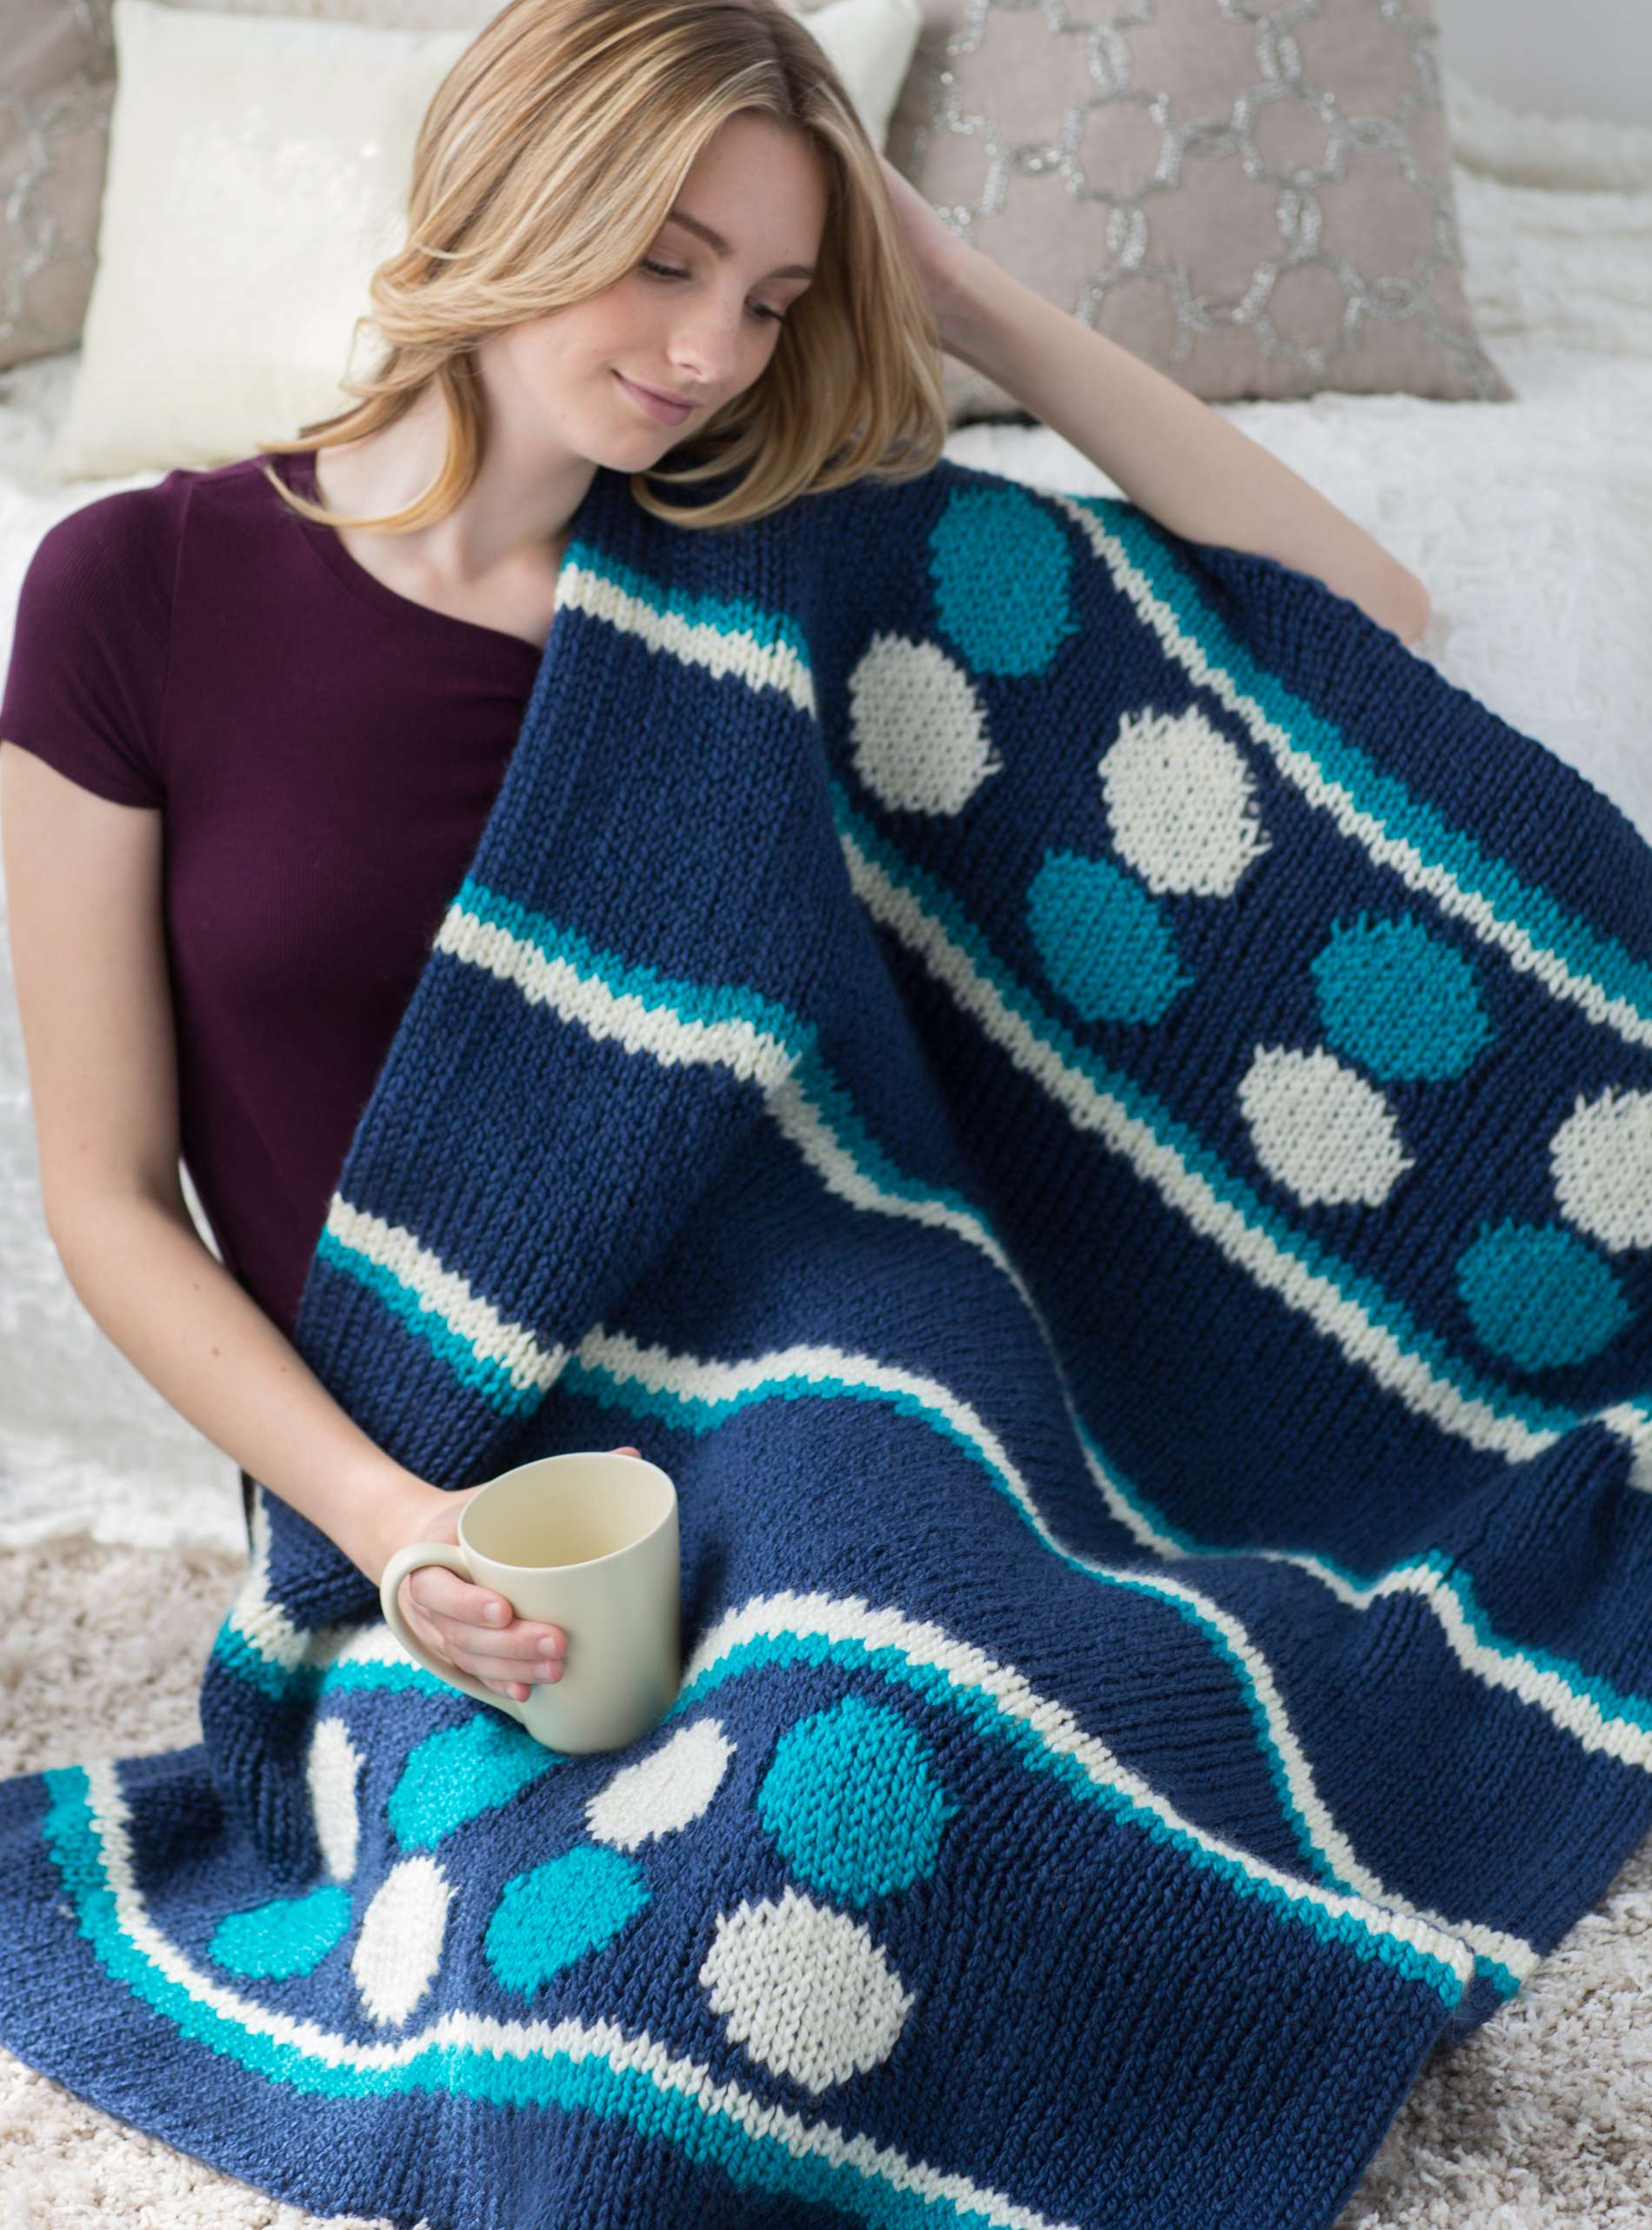 Sea Waves Afghan « KB Looms Blog